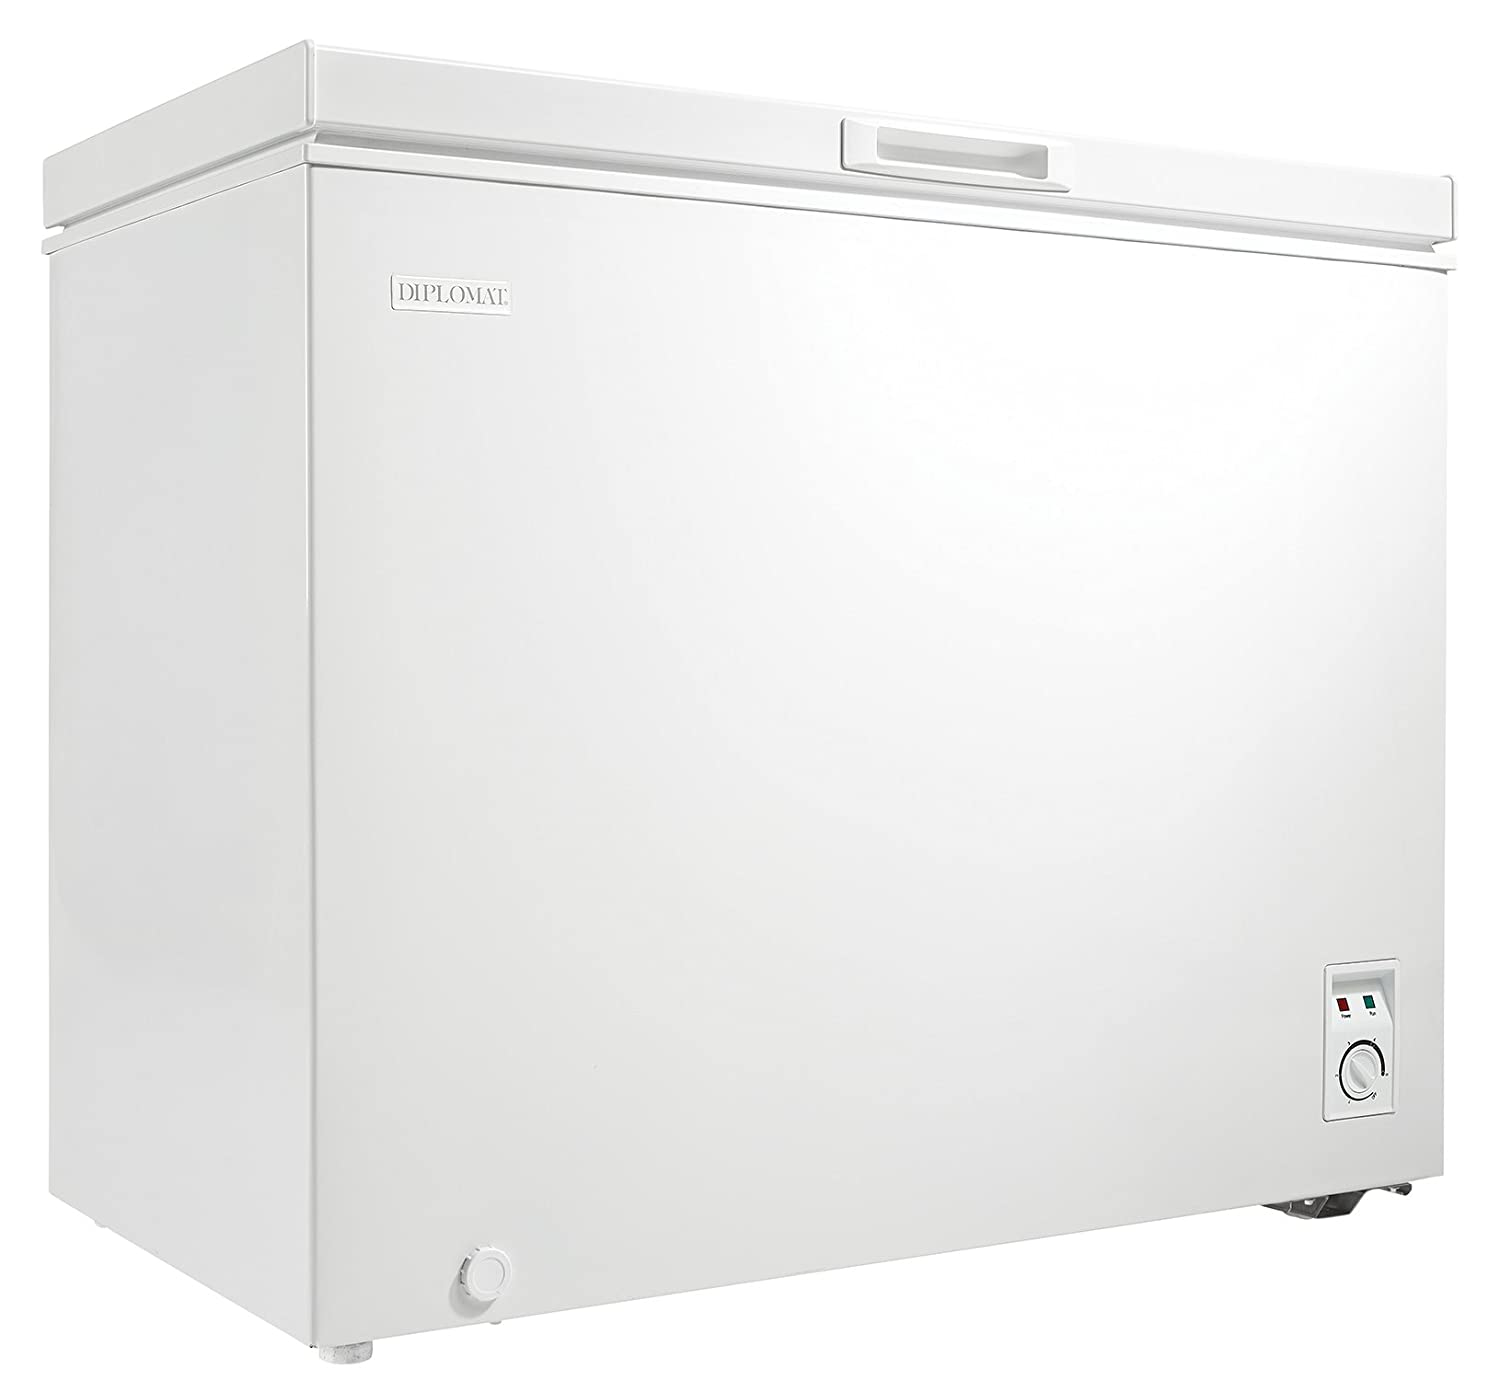 Danby Diplomat 7-Cu. Ft. Chest Freezer in White